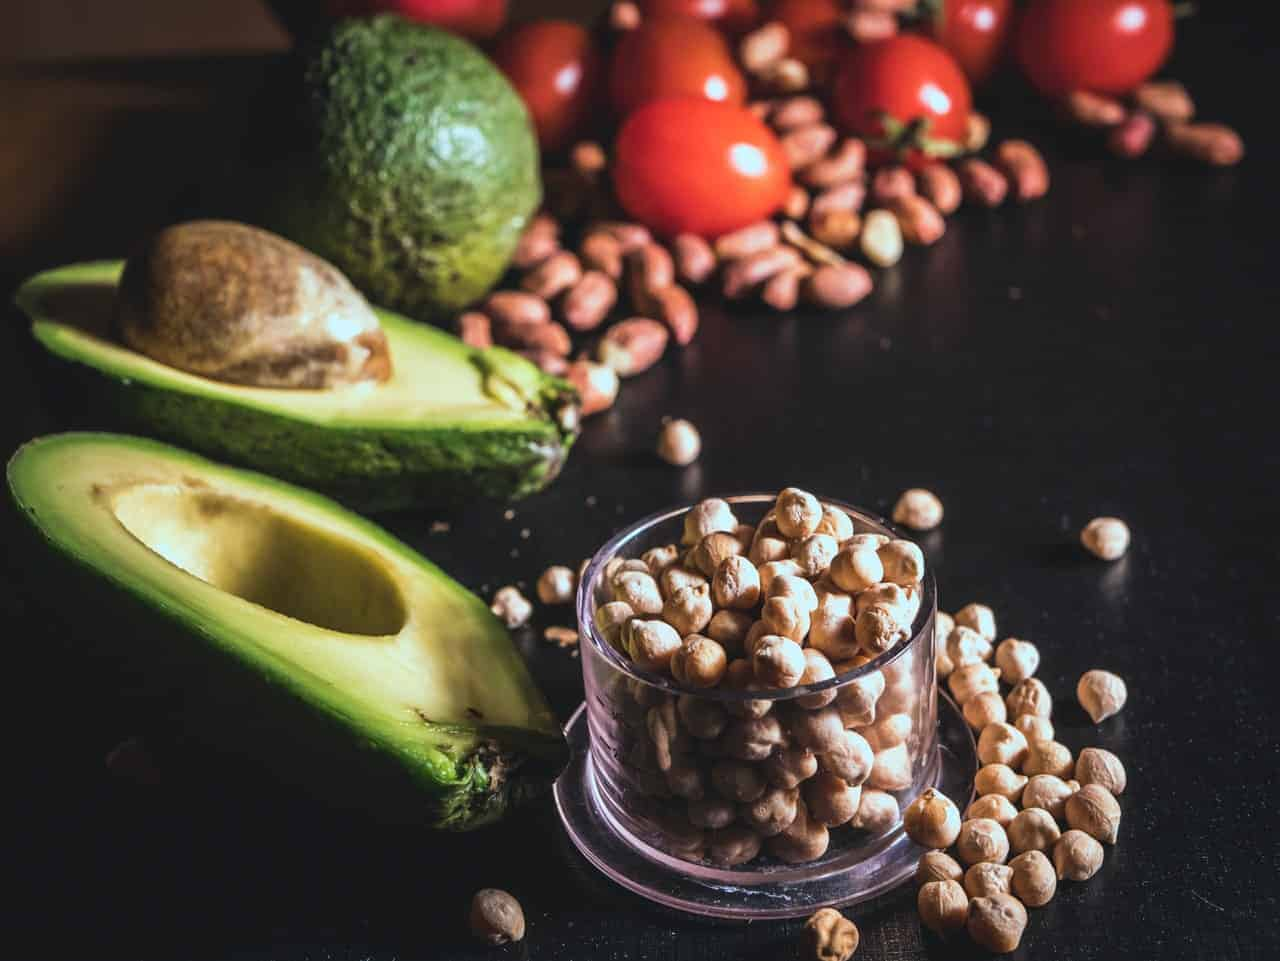 Chickpeas, avocados and cherry tomatoes